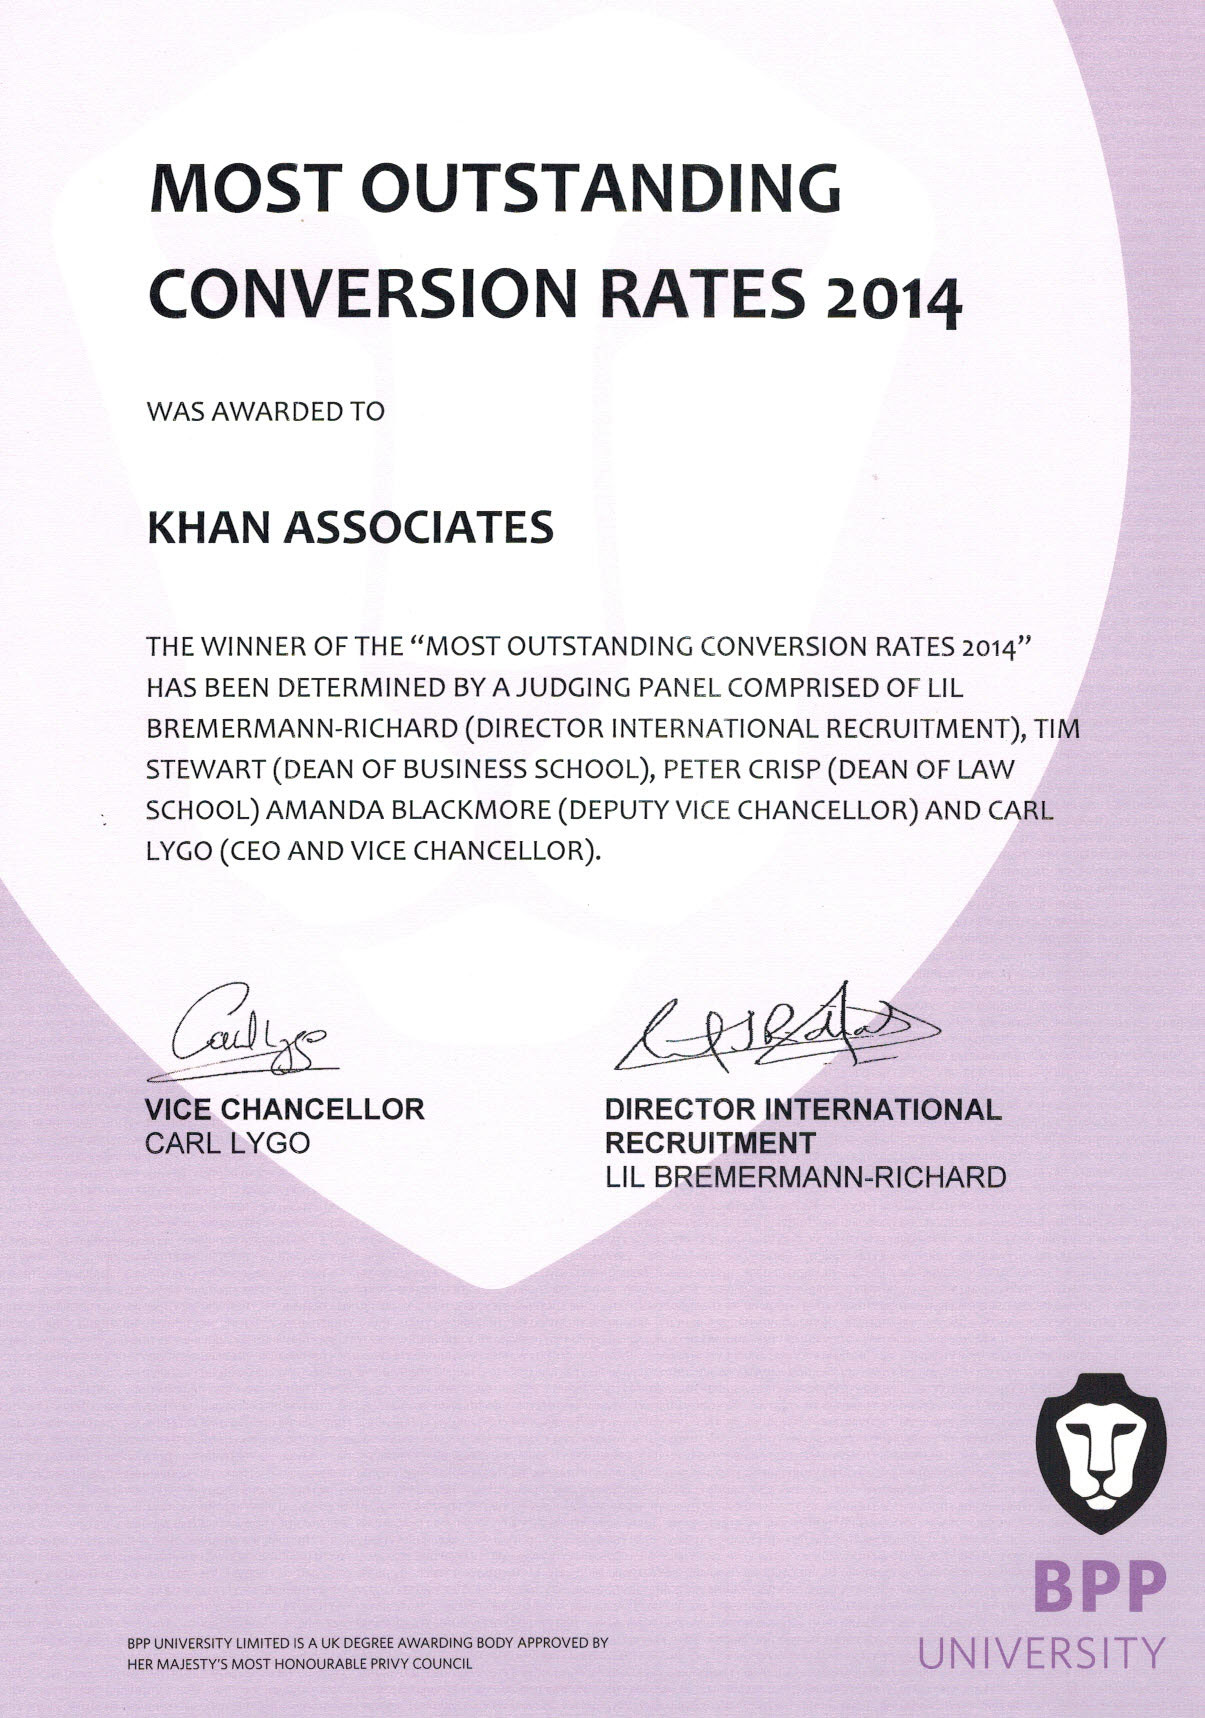 Most Outstanding Conversion Rates 2014